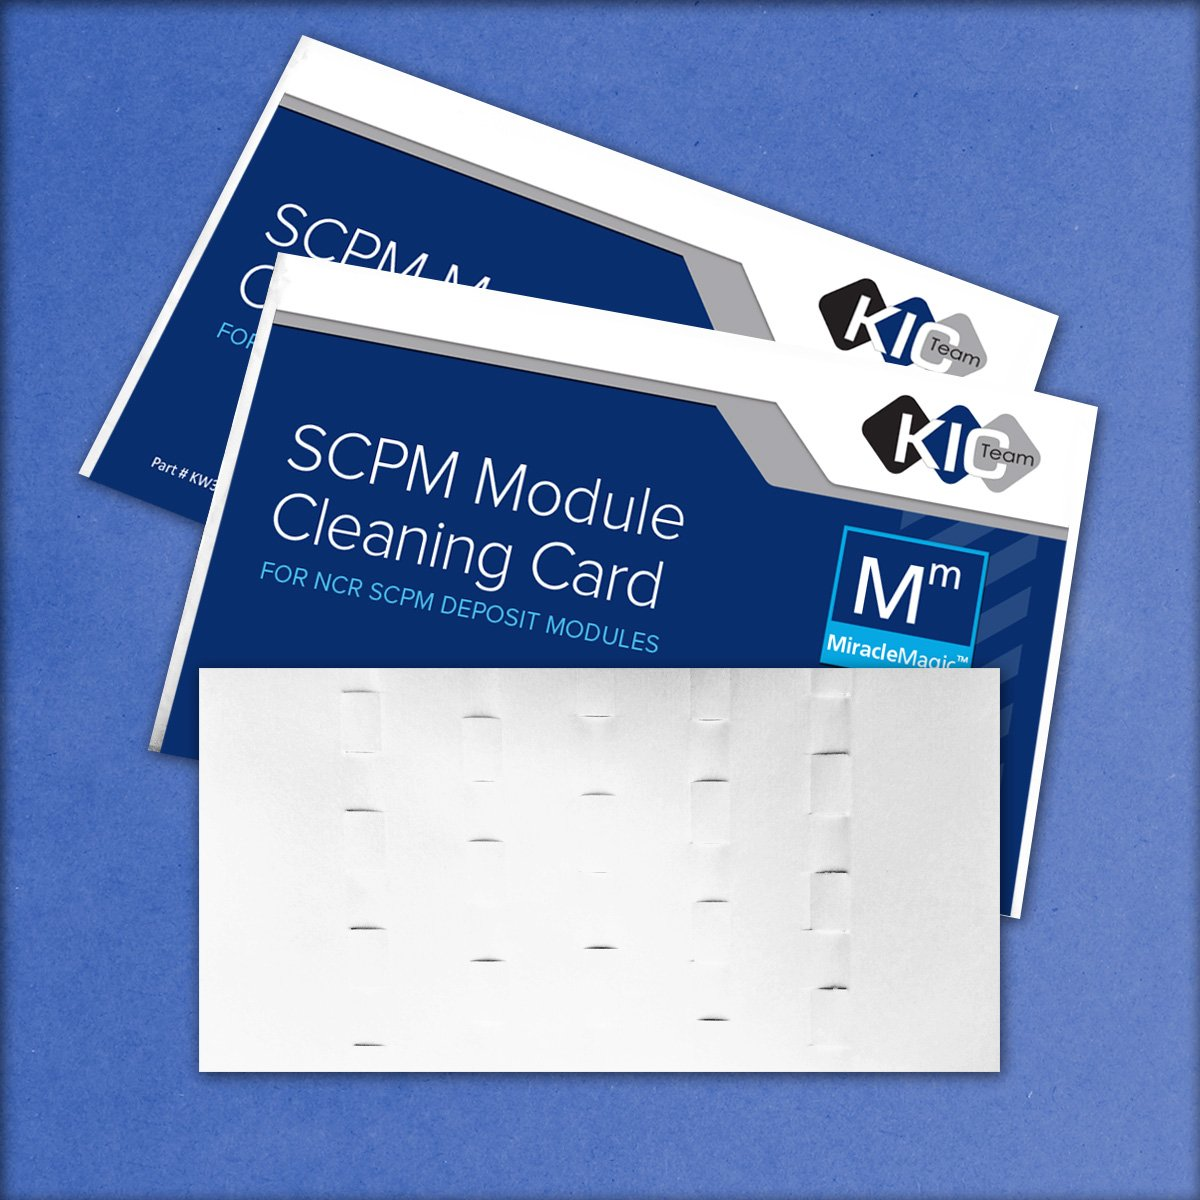 SCPM Module Cleaning Card For NCR SDM Deposit Module (15 Cards) (15) by Waffletechnology